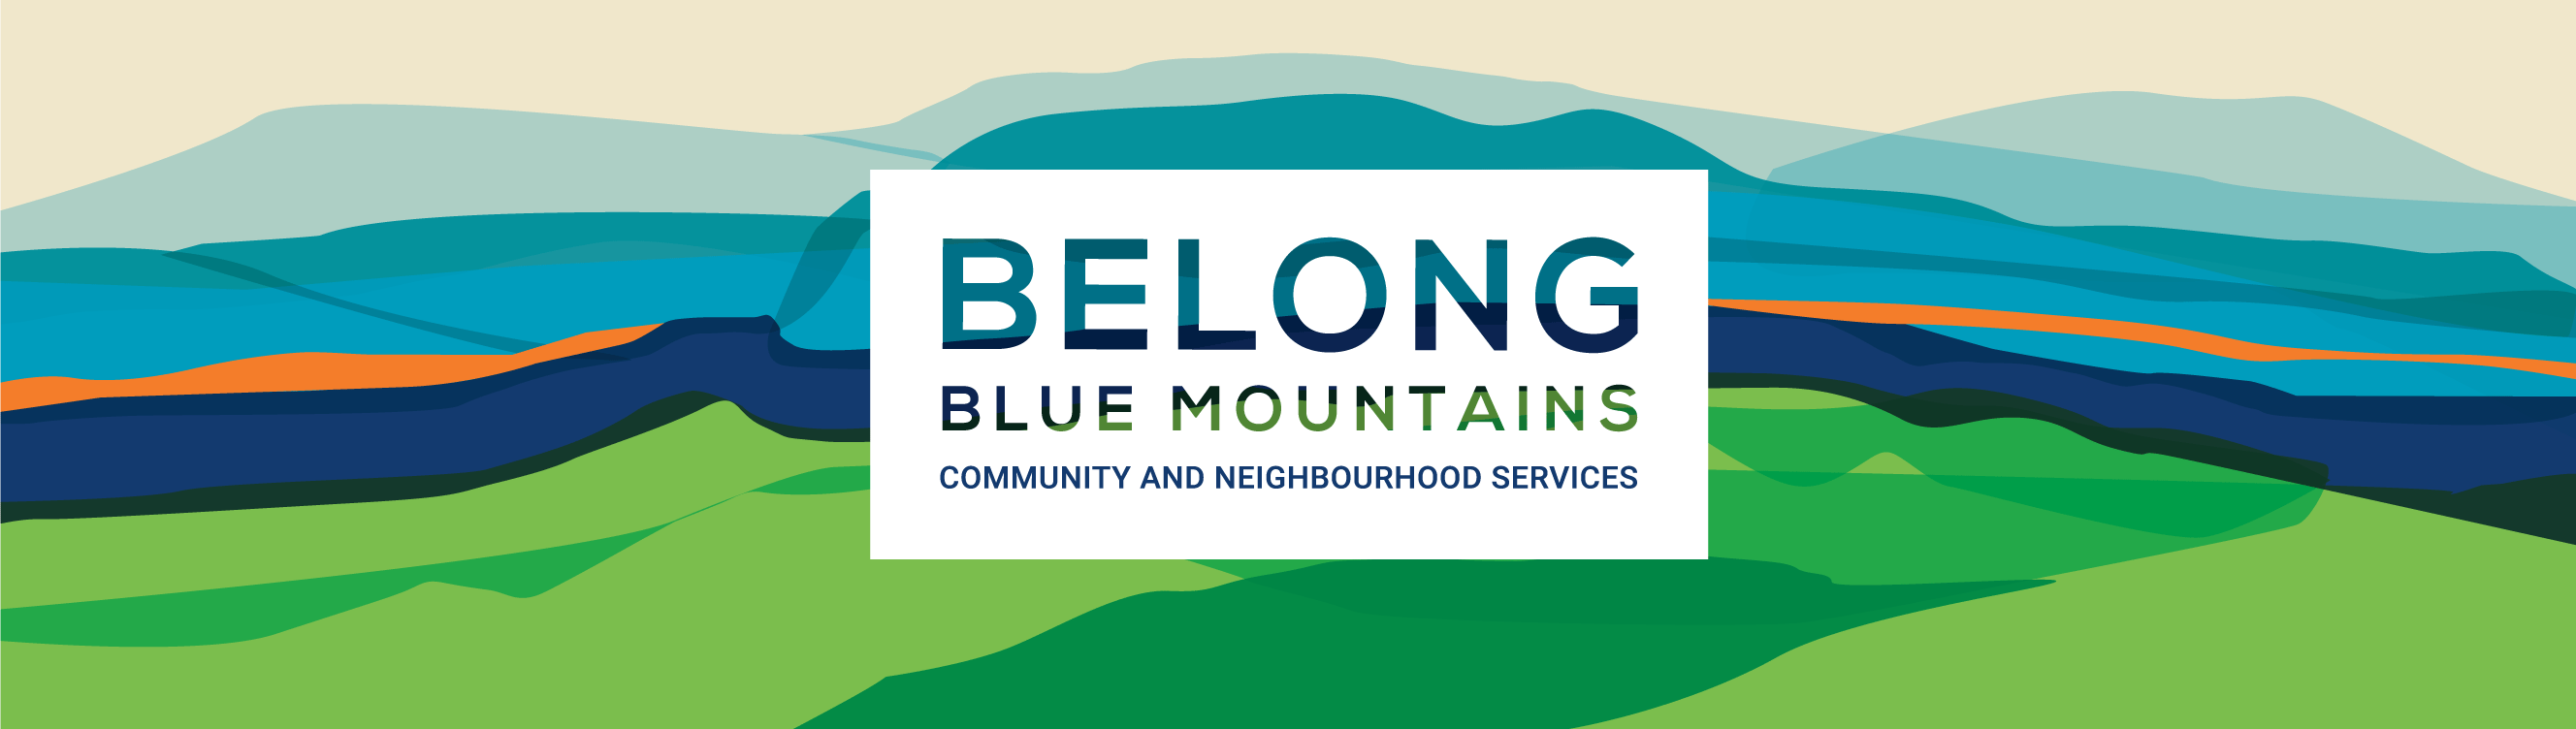 Belong Blue Mountains logo